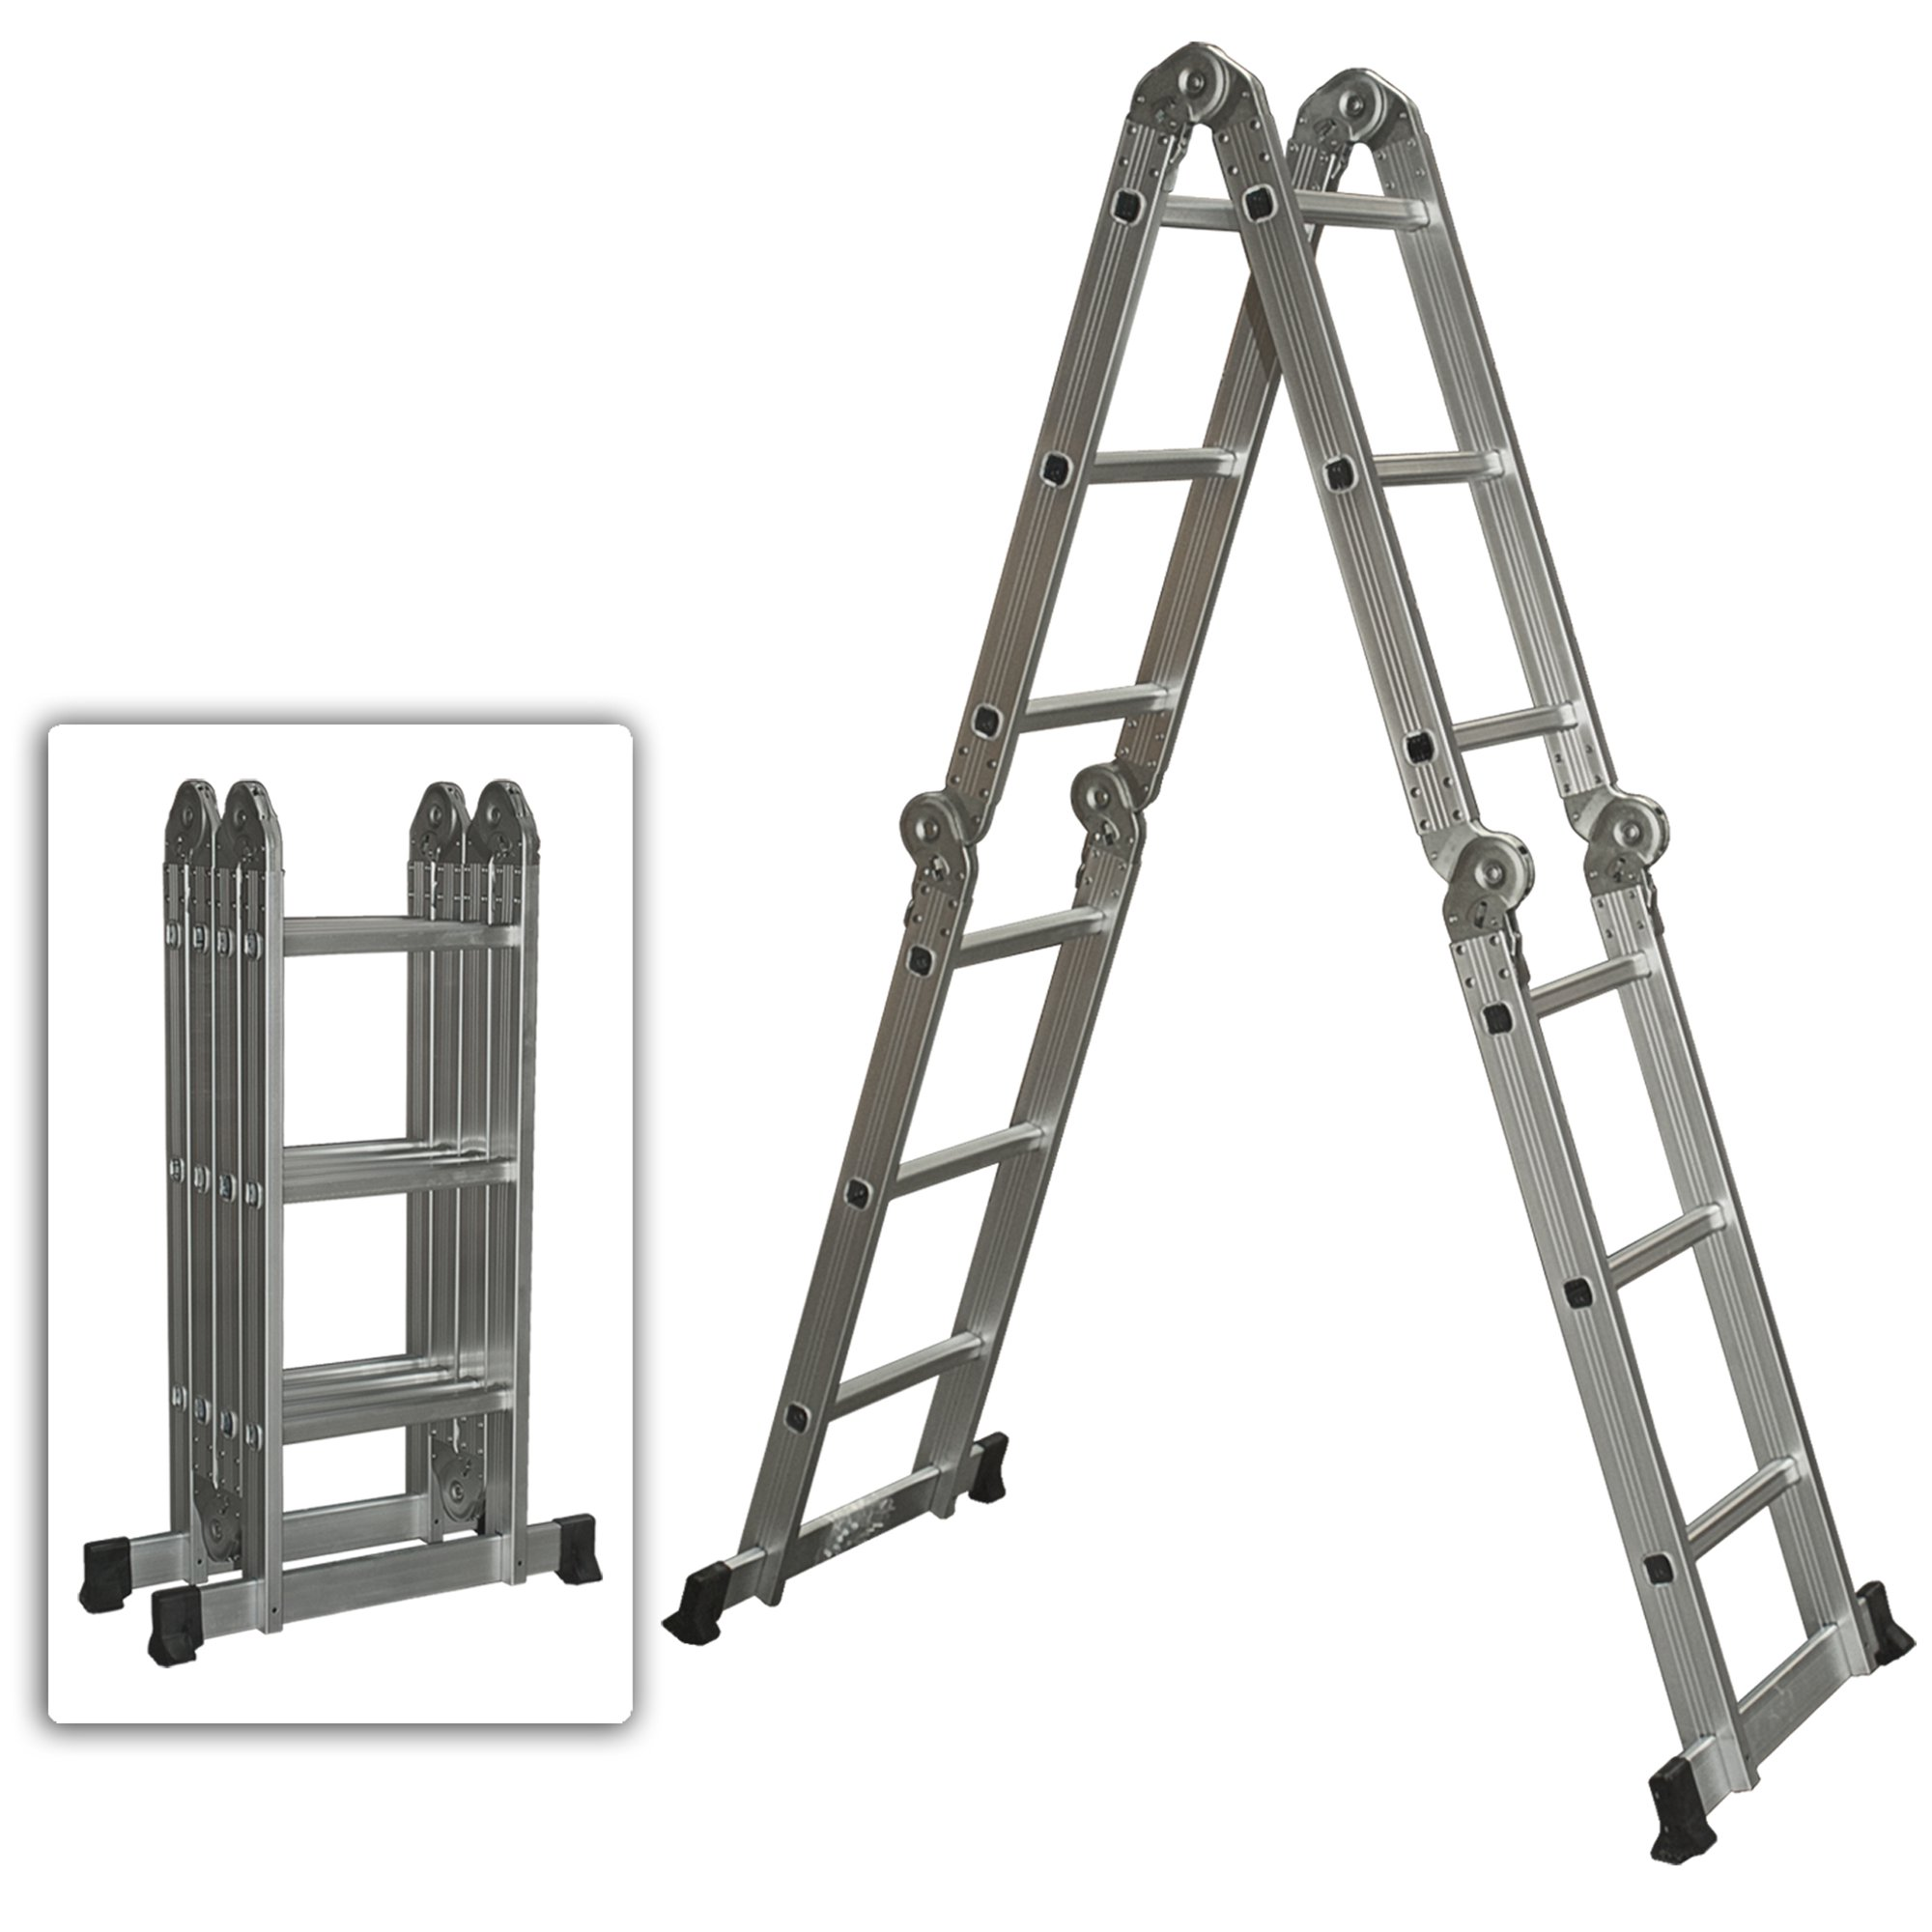 Best Choice Products Multi Purpose Aluminum Ladder Folding Step Ladder Extendable Heavy Duty Walmart Com Walmart Com